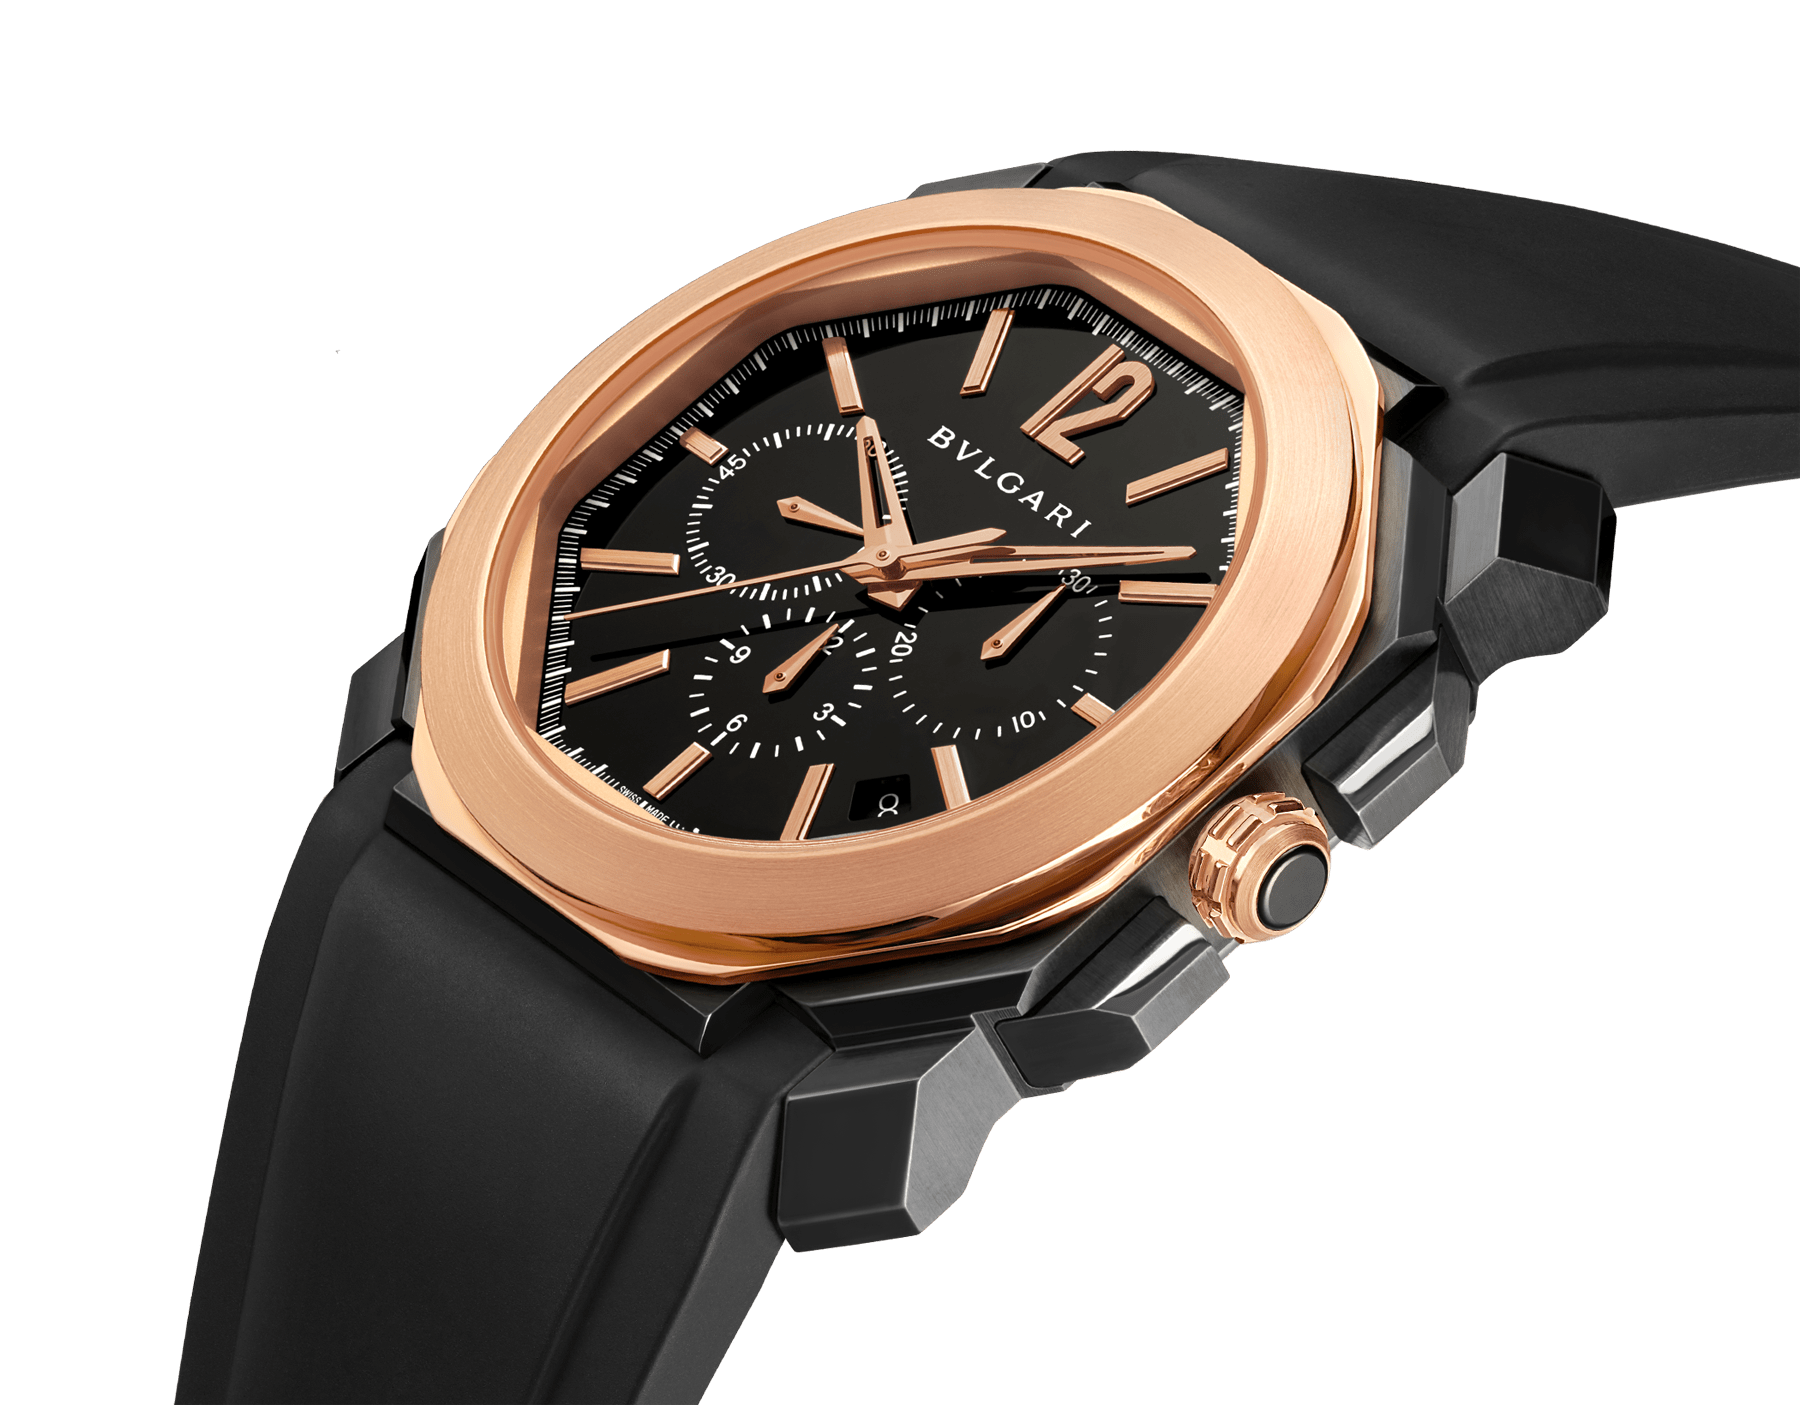 Octo watch with mechanical manufacture movement, high-frequency chronograph, automatic winding and date, stainless steel case treated with black Diamond Like Carbon, 18 kt rose gold bezel, black lacquered dial and black rubber bracelet. 102488 image 2